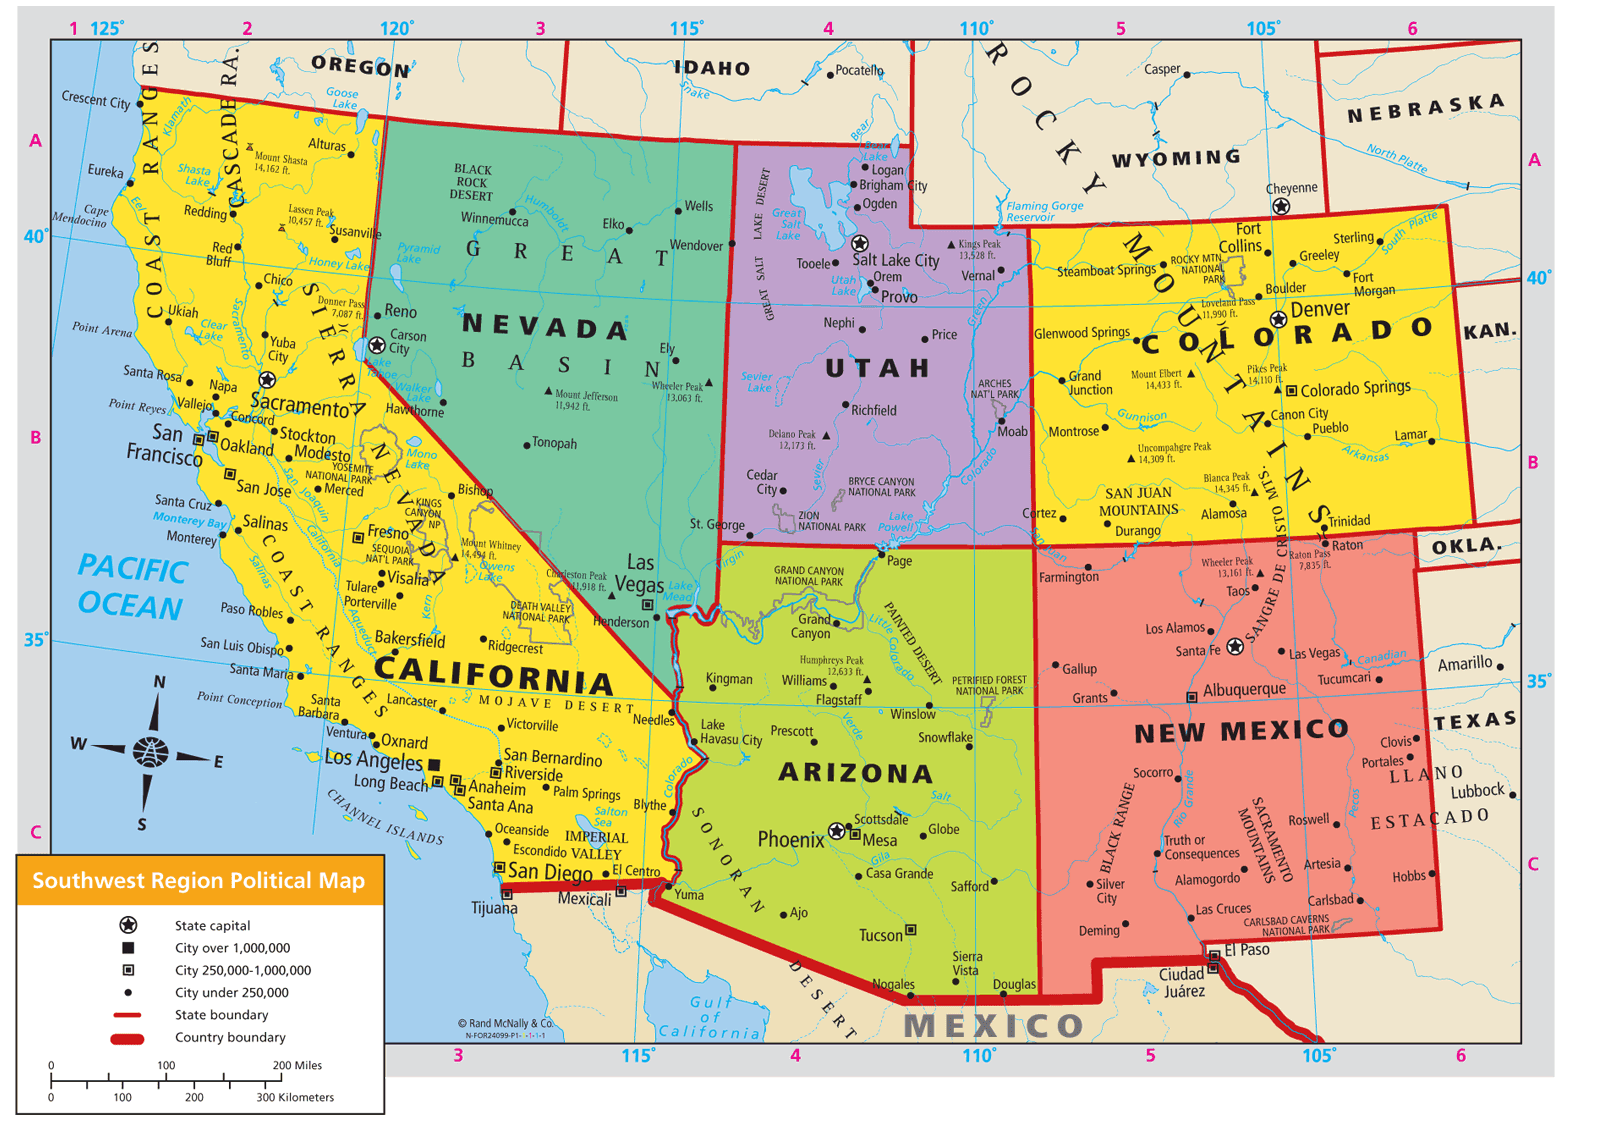 Maps Of Southwest And West USA The American Southwest US - Southwest us map